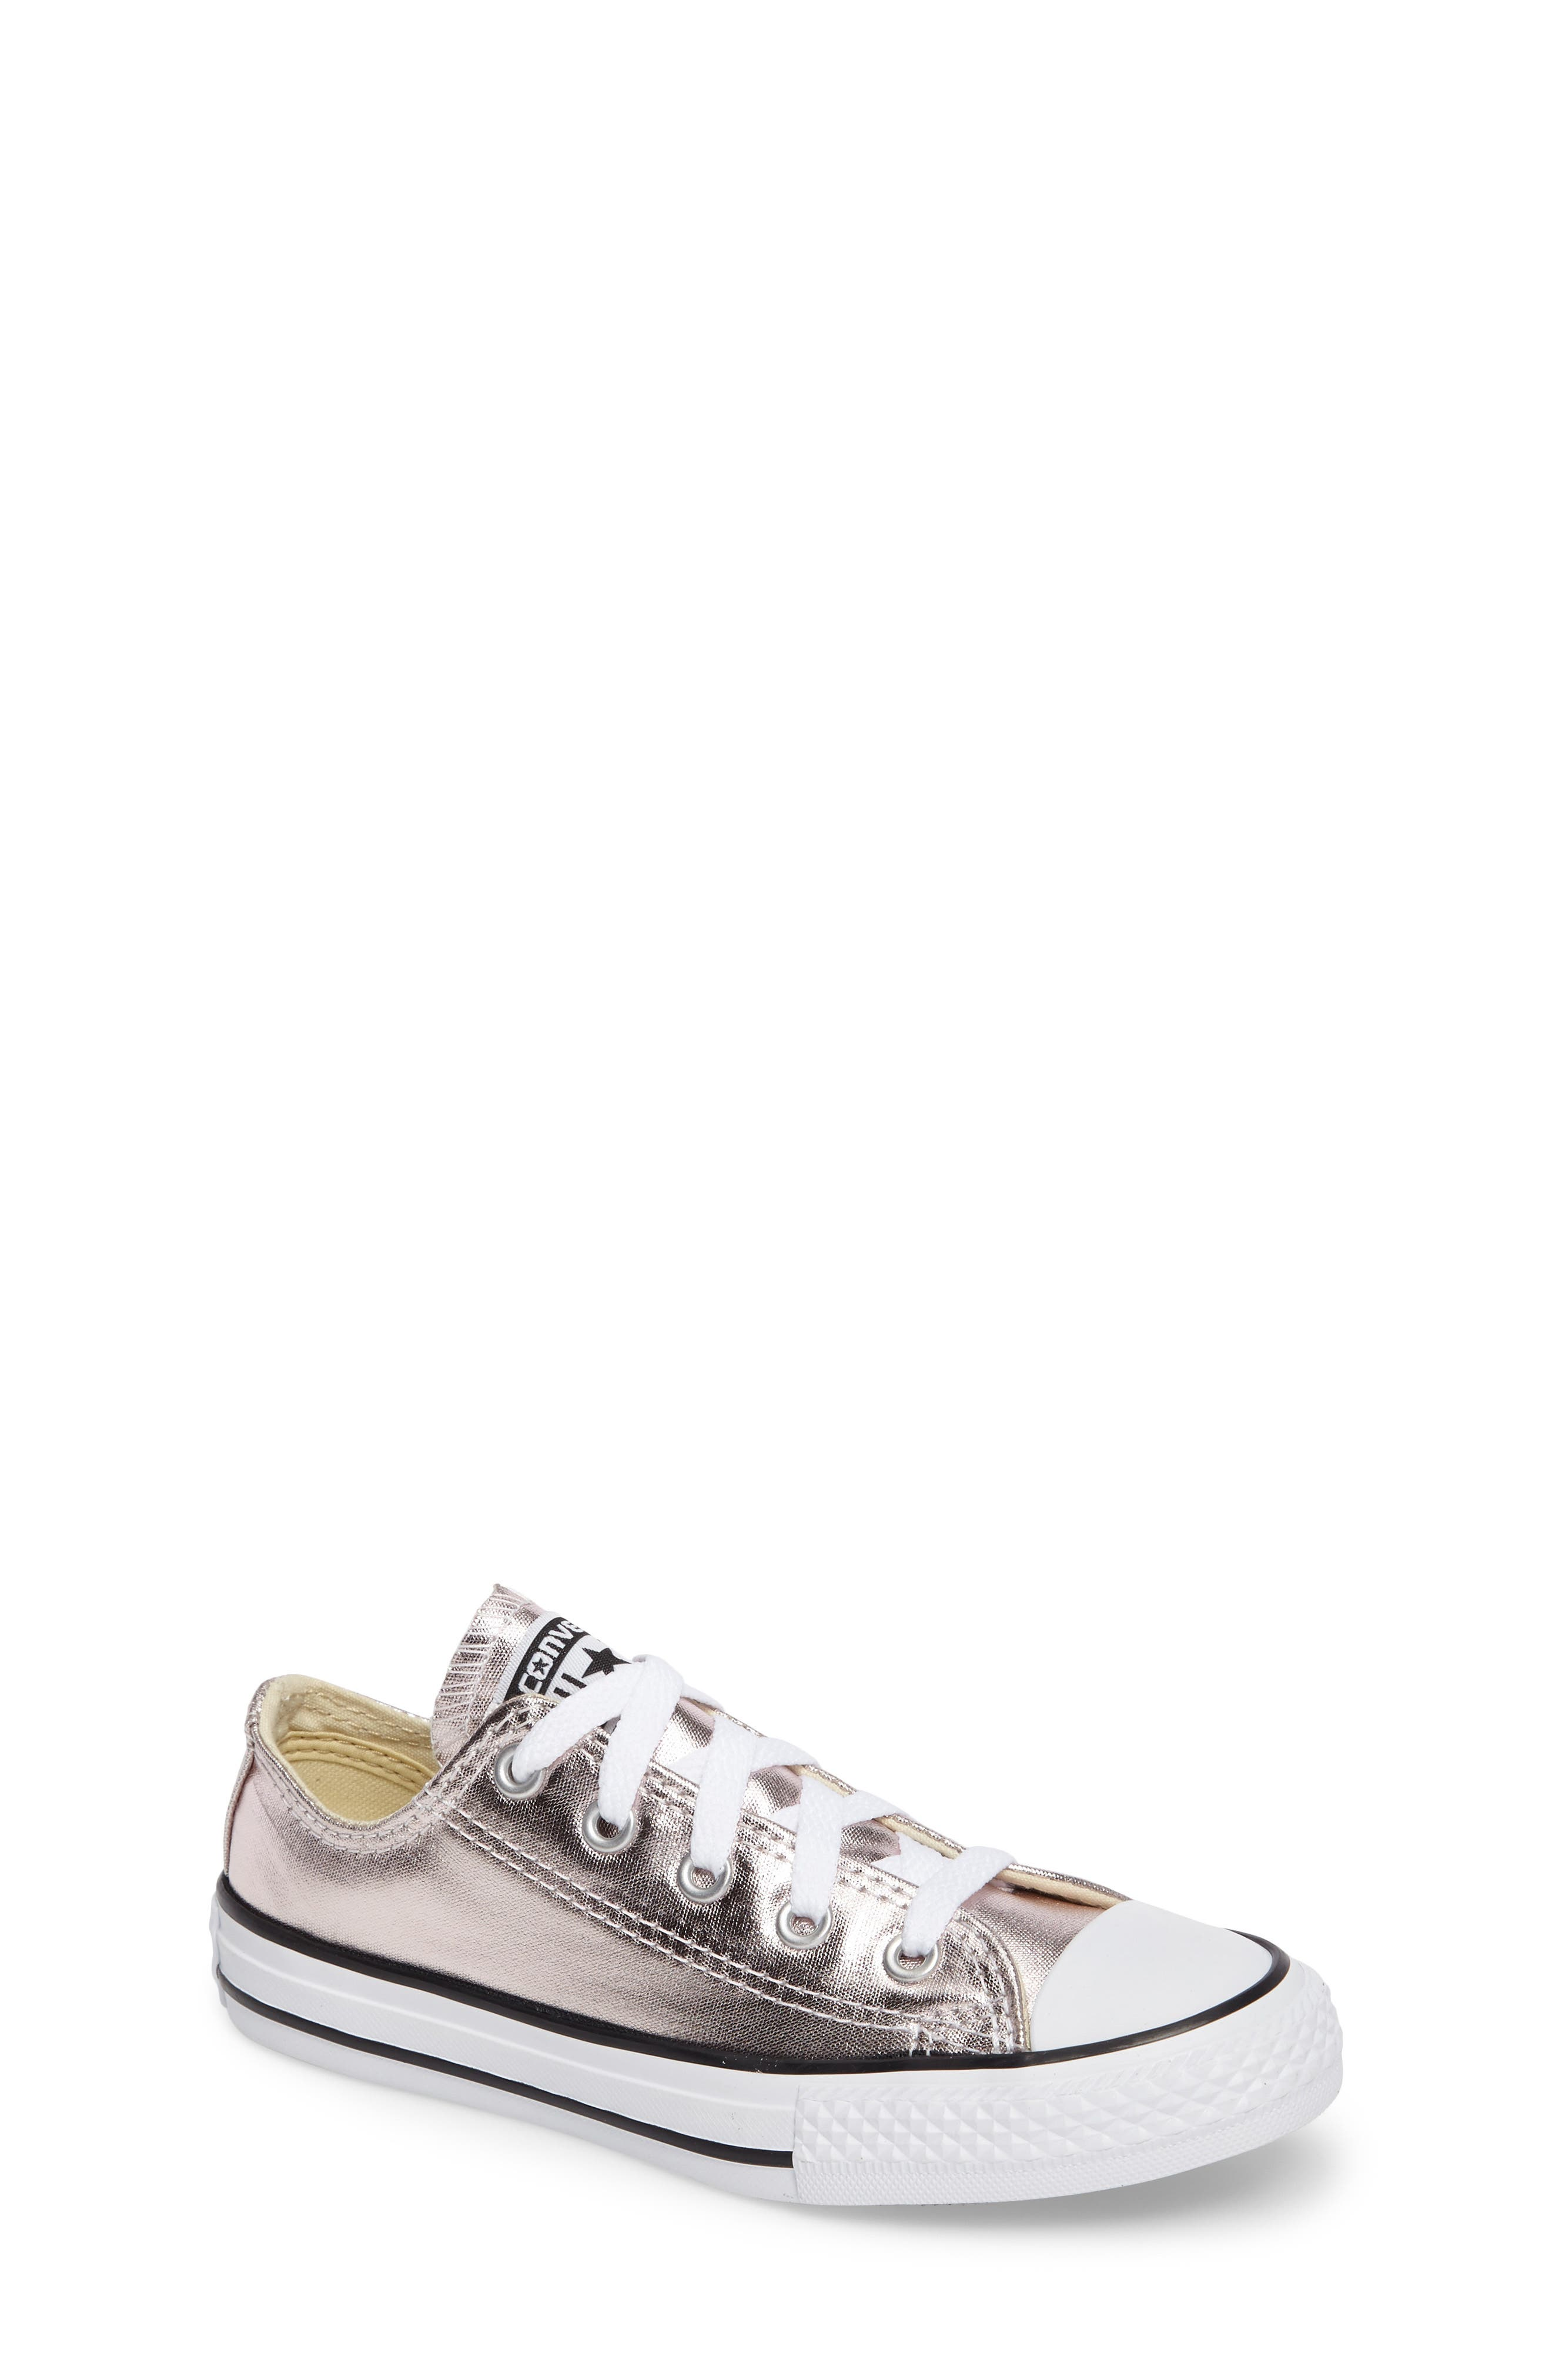 Main Image - Converse Chuck Taylor® All Star® Ox Metallic Low Top Sneaker (Toddler & Little Kid)